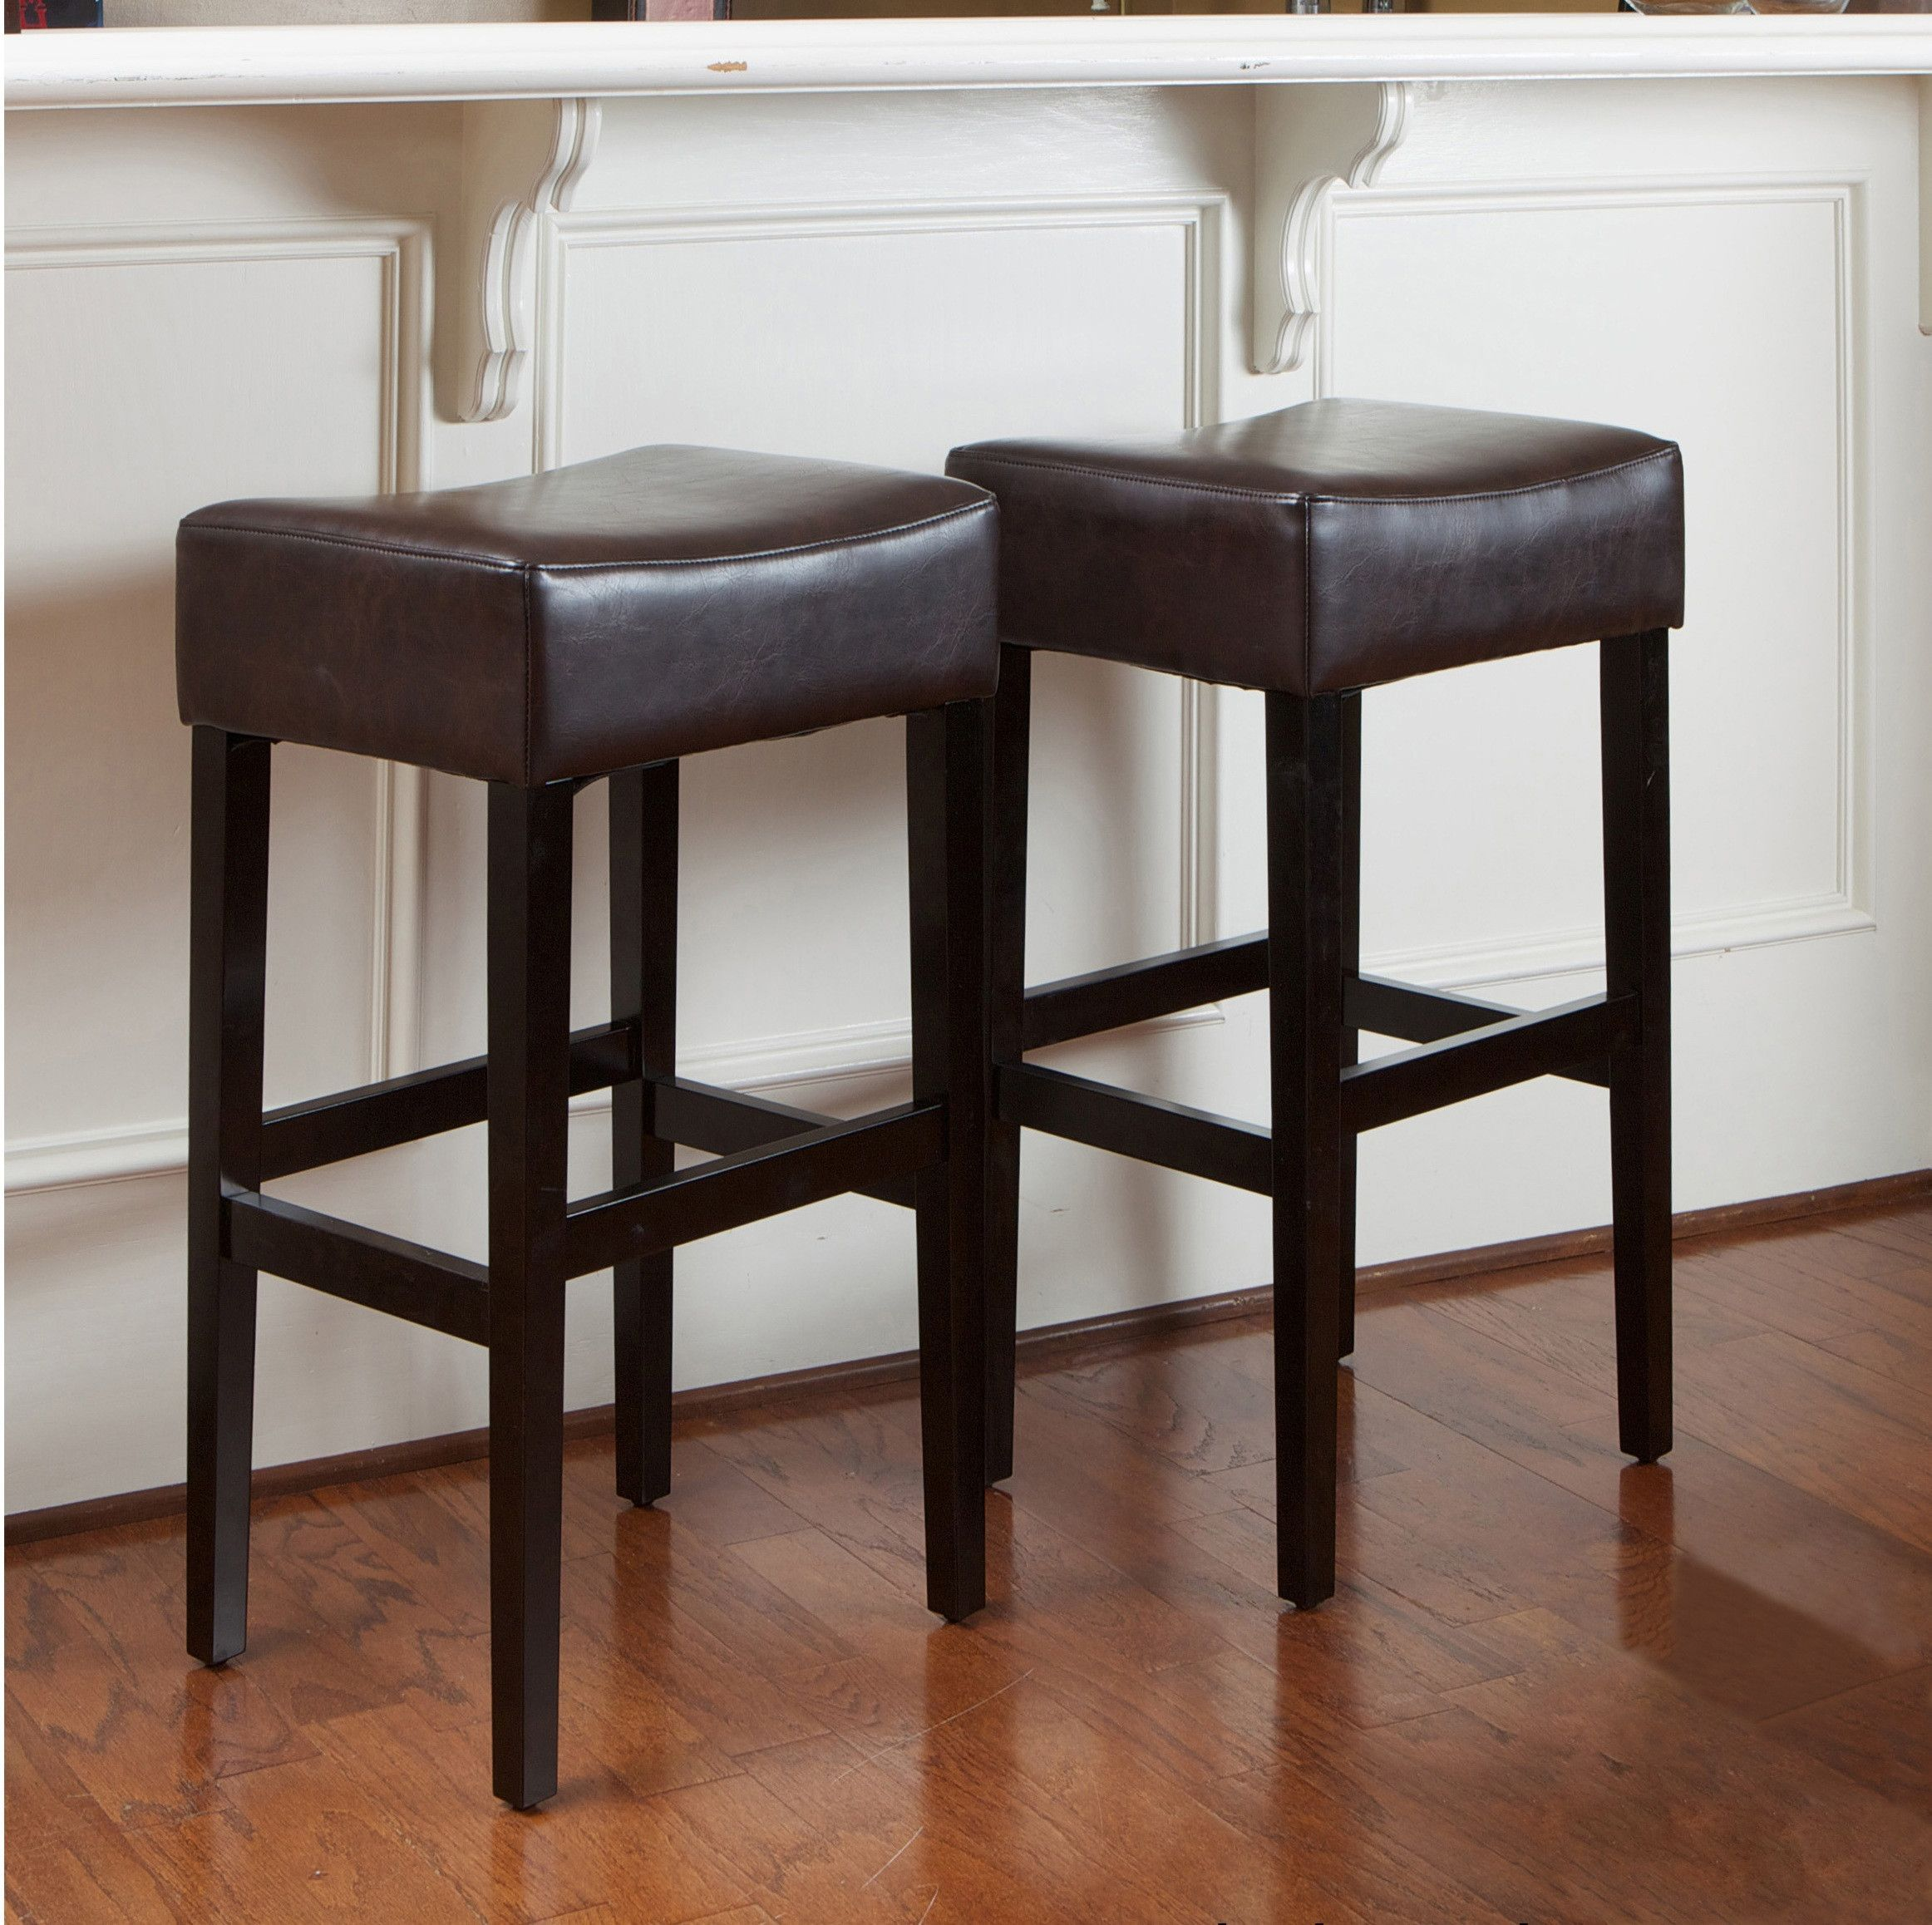 Duff 31 Inch Backless Leather Bar Stools Set Of 2 Backless Bar